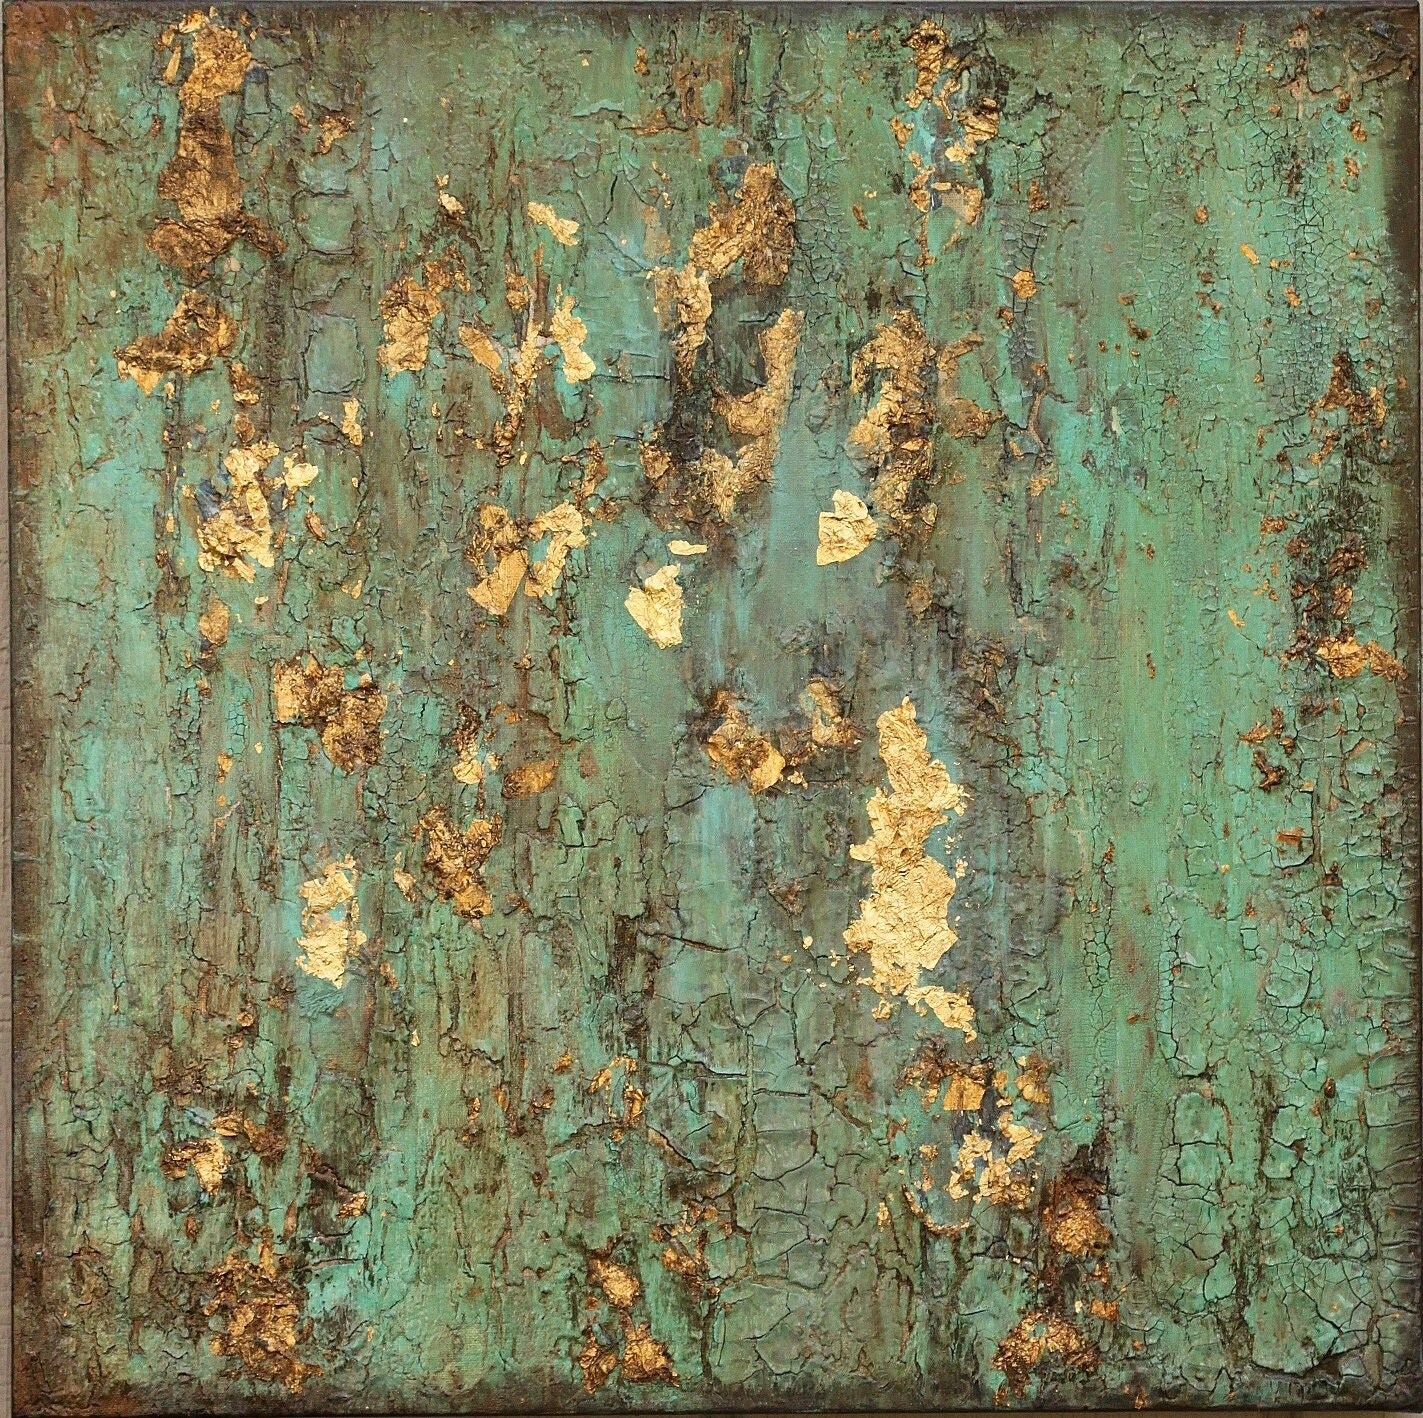 Sold textured gold leaf turquoise painting original rustic for Texture painting on canvas